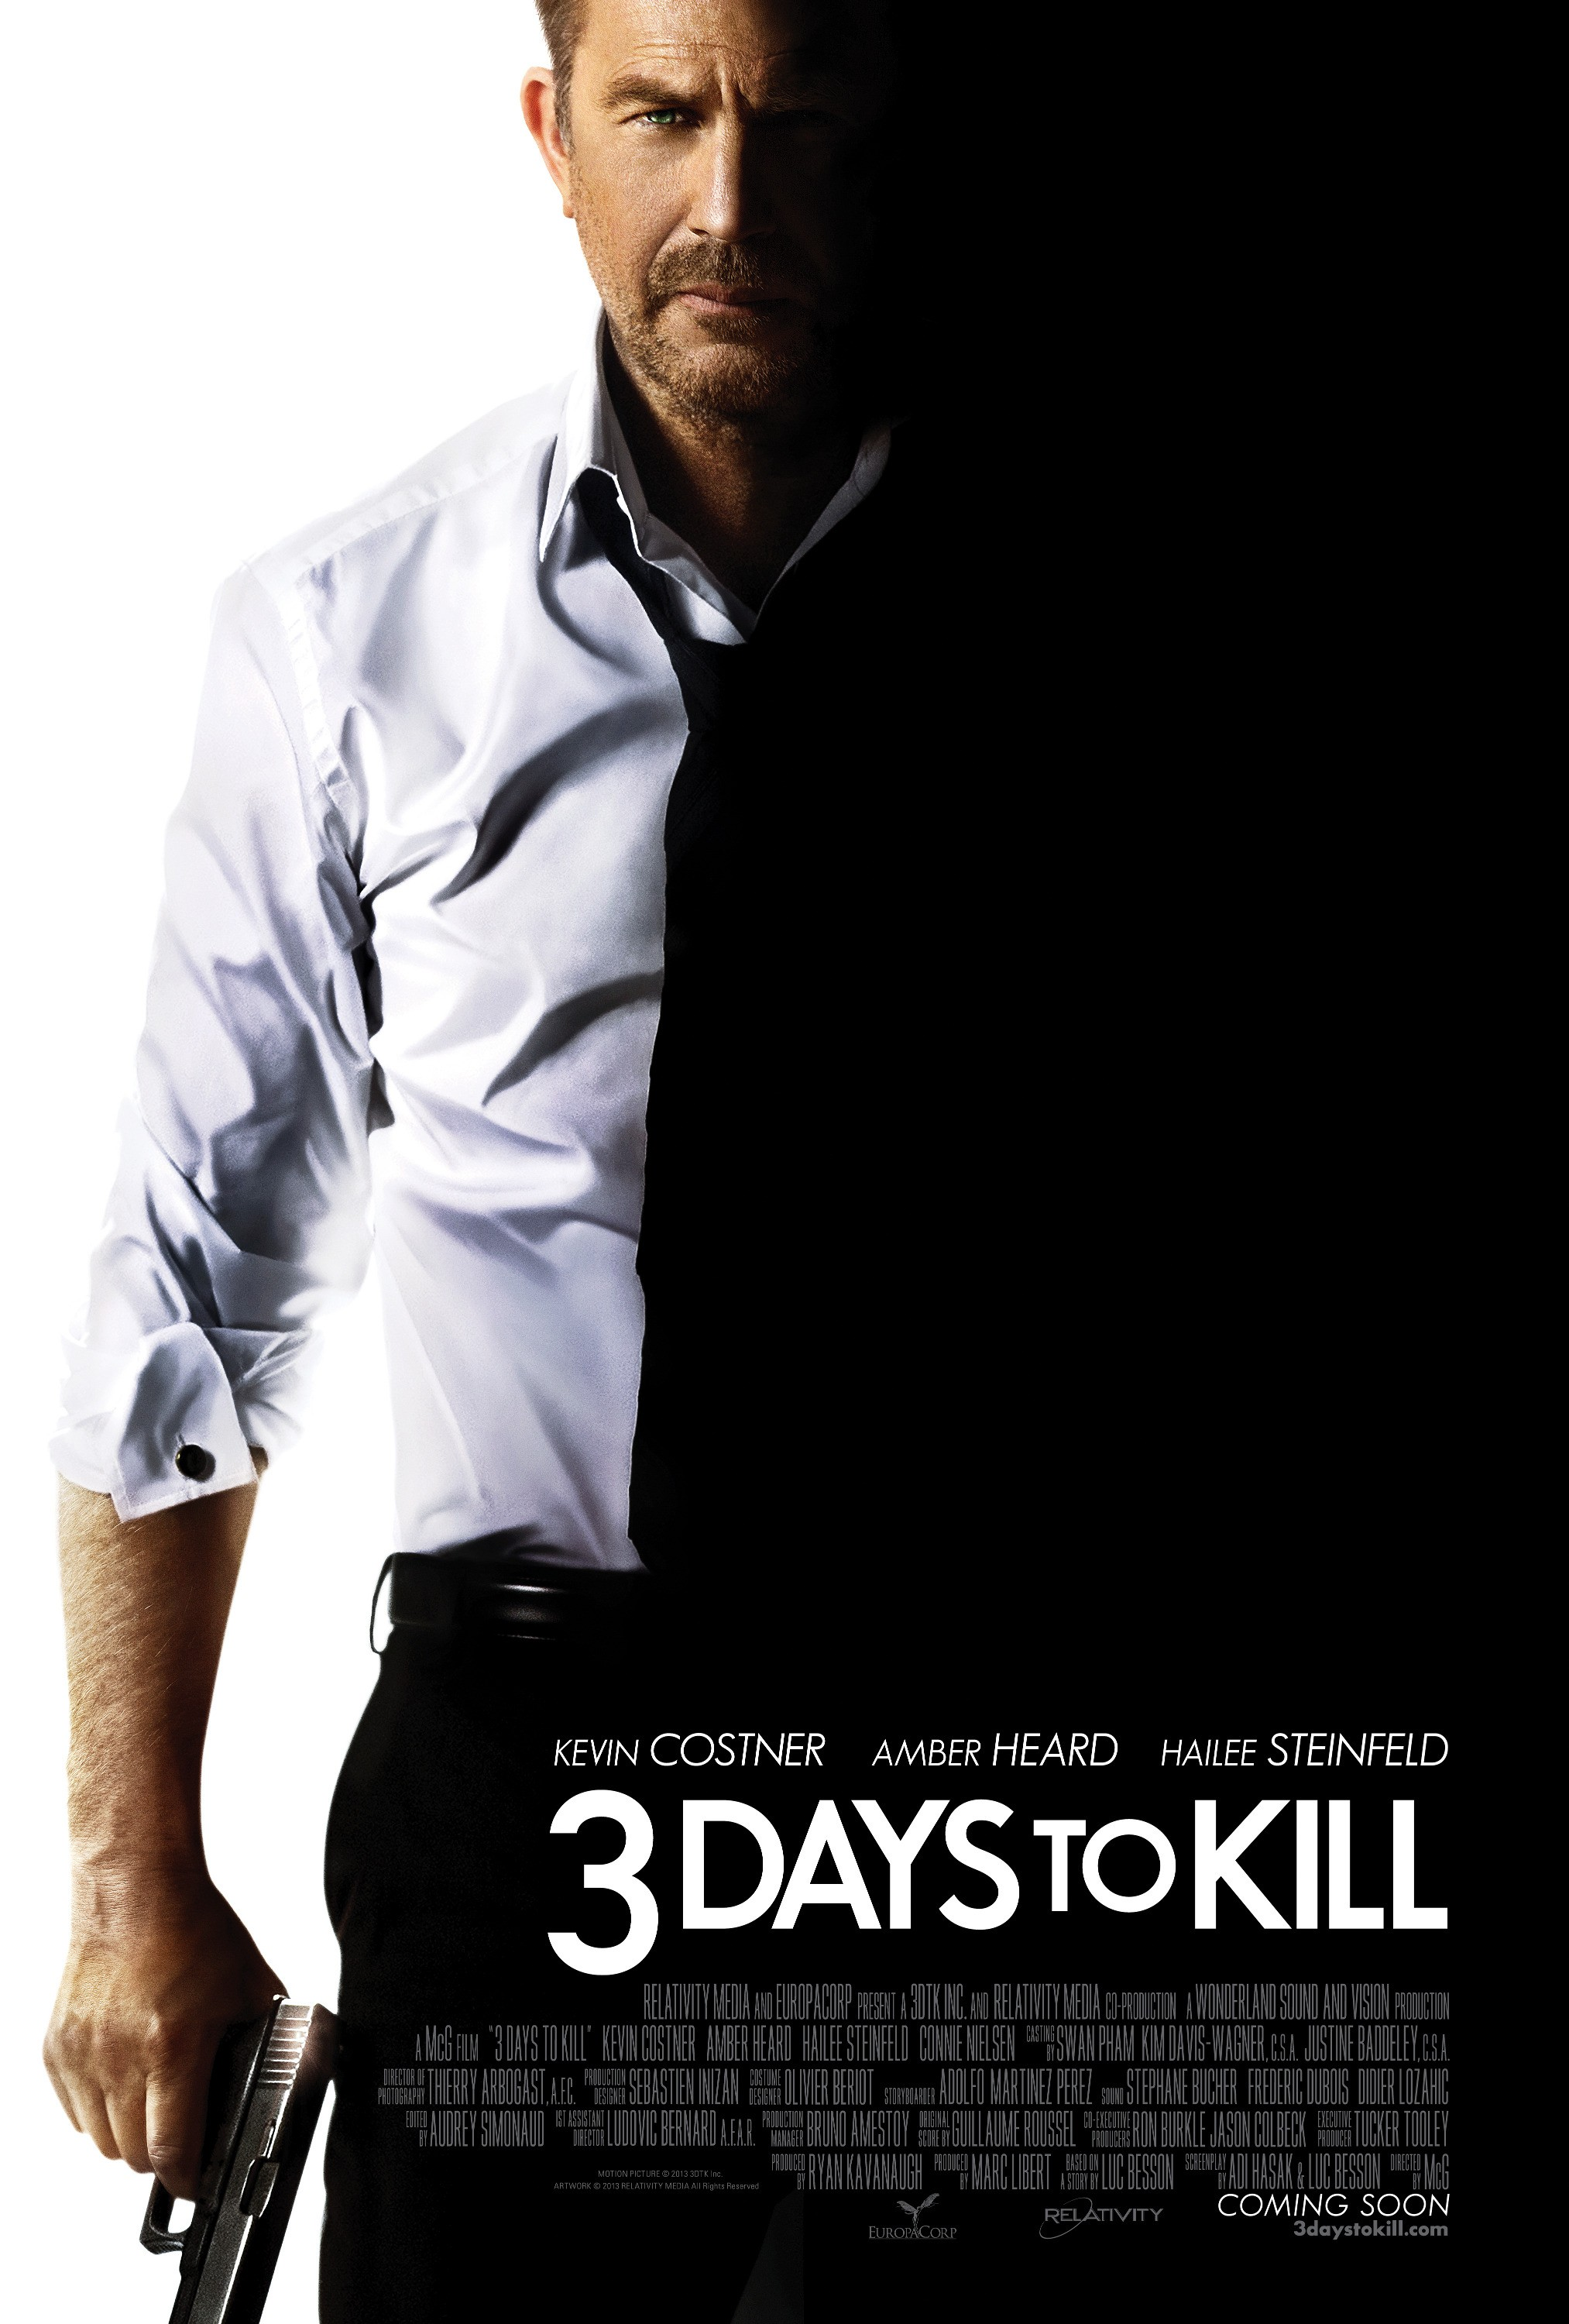 3 Days to Kill-Official Poster Banner PROMO POSTER XXLG-18DEZEMBRO2013